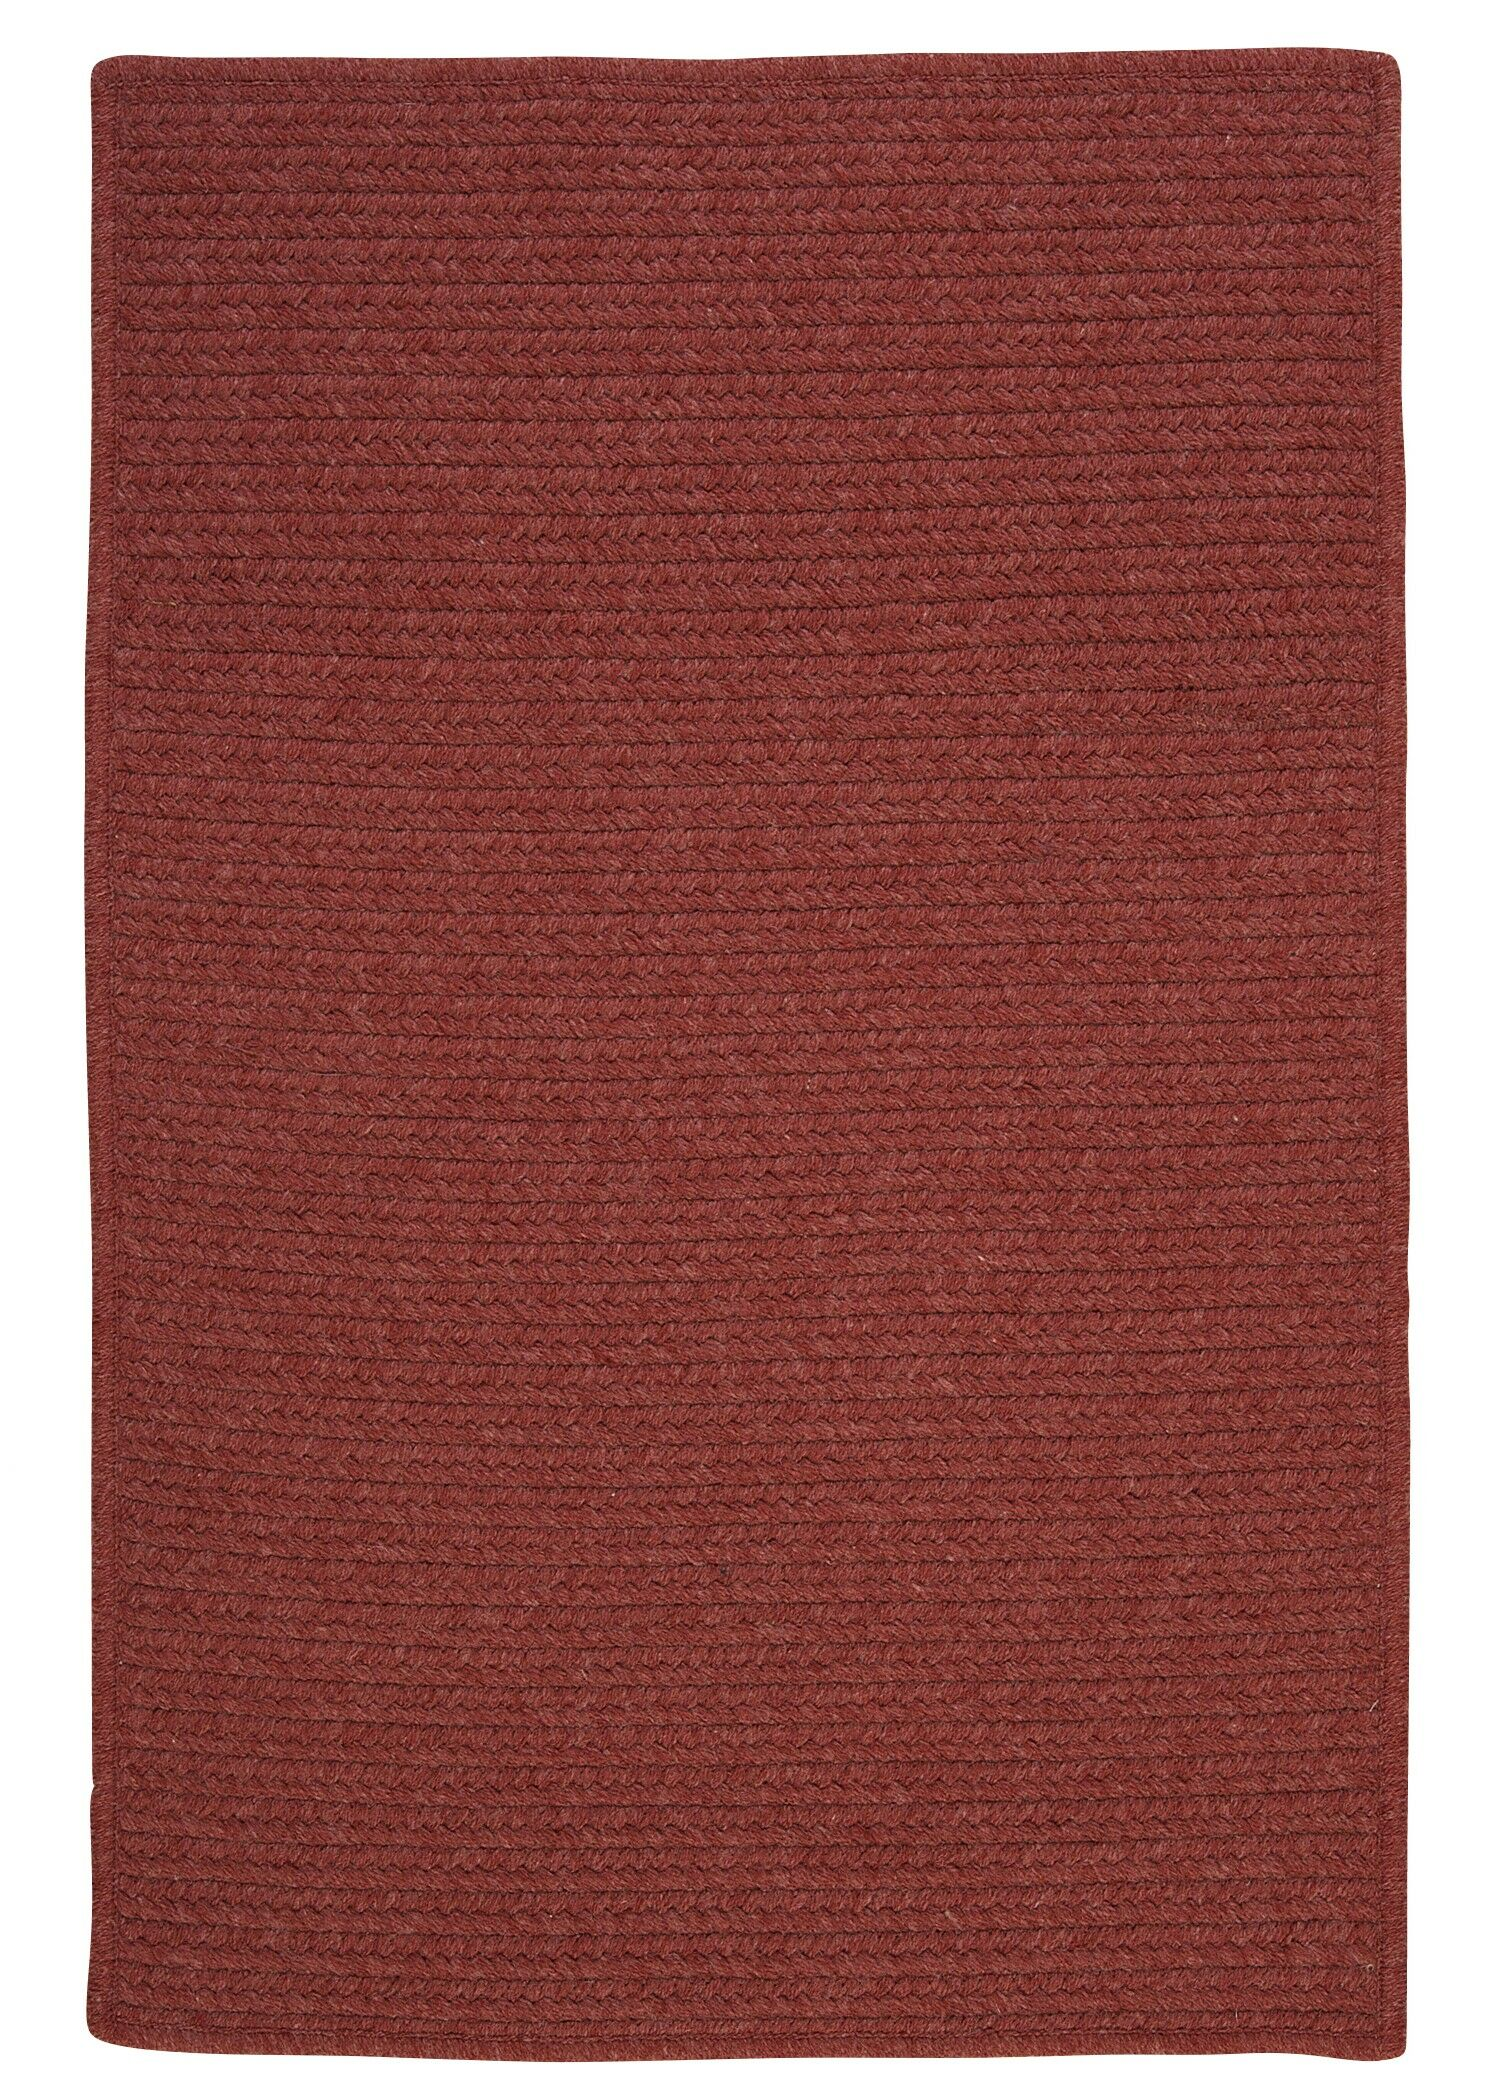 Westminster Rosewood Area Rug Fringe: Included, Rug Size: Square 10'